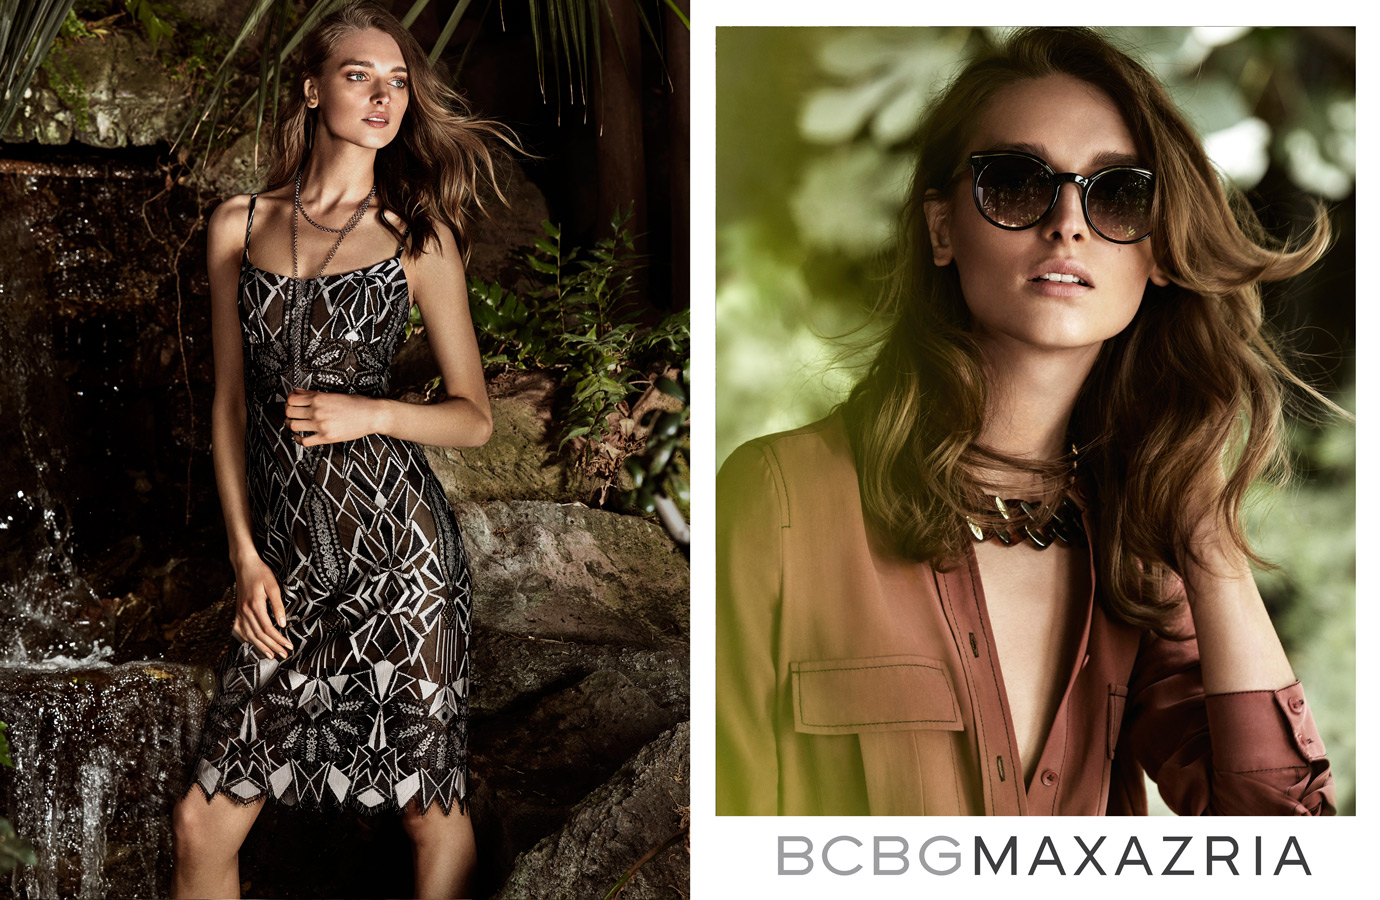 mikael-schulz-photographer-advertising-bcbg-fall-2016-1